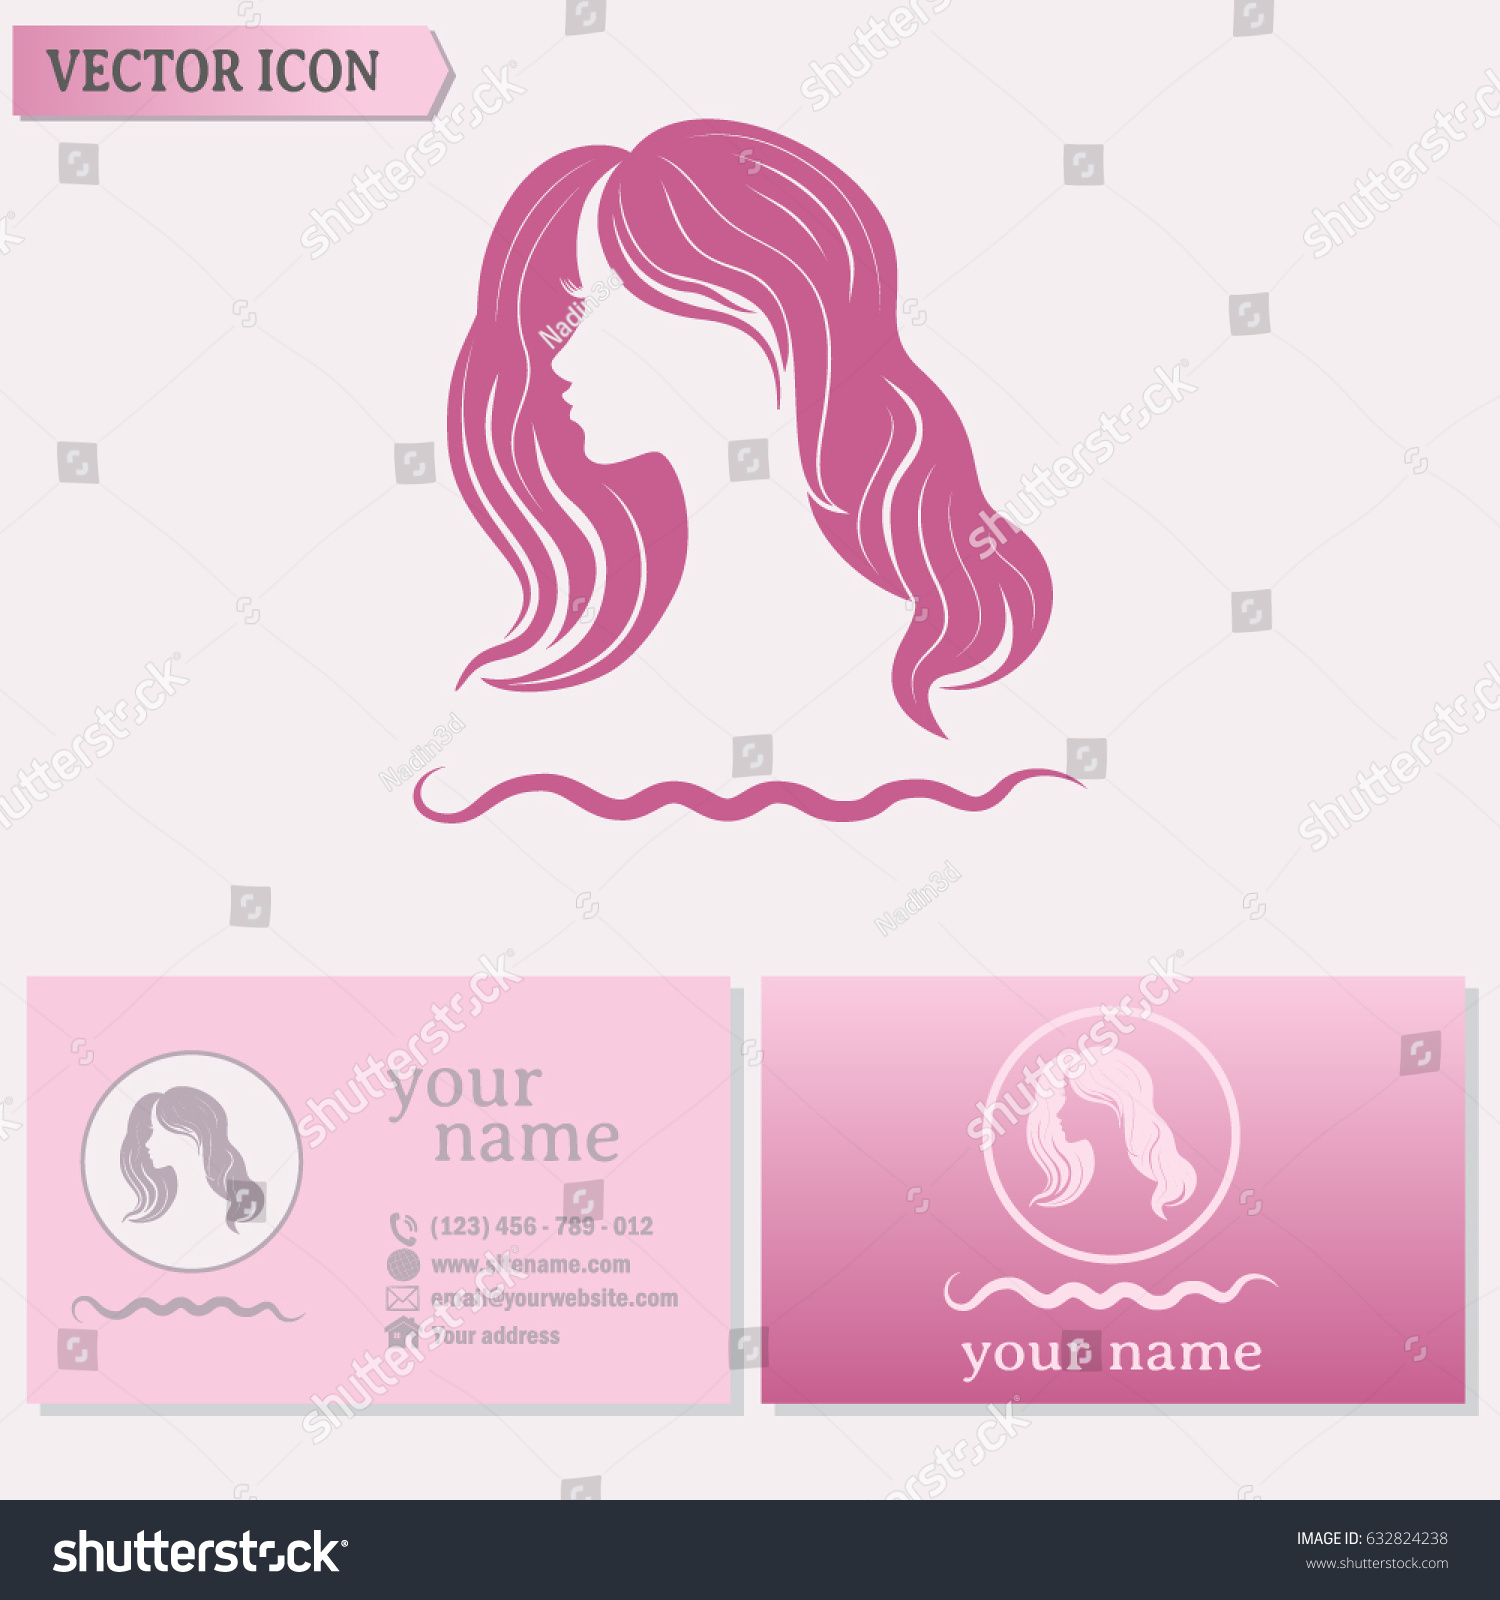 Business Cards Design Beautiful Woman Silhouette Stock Vector ...